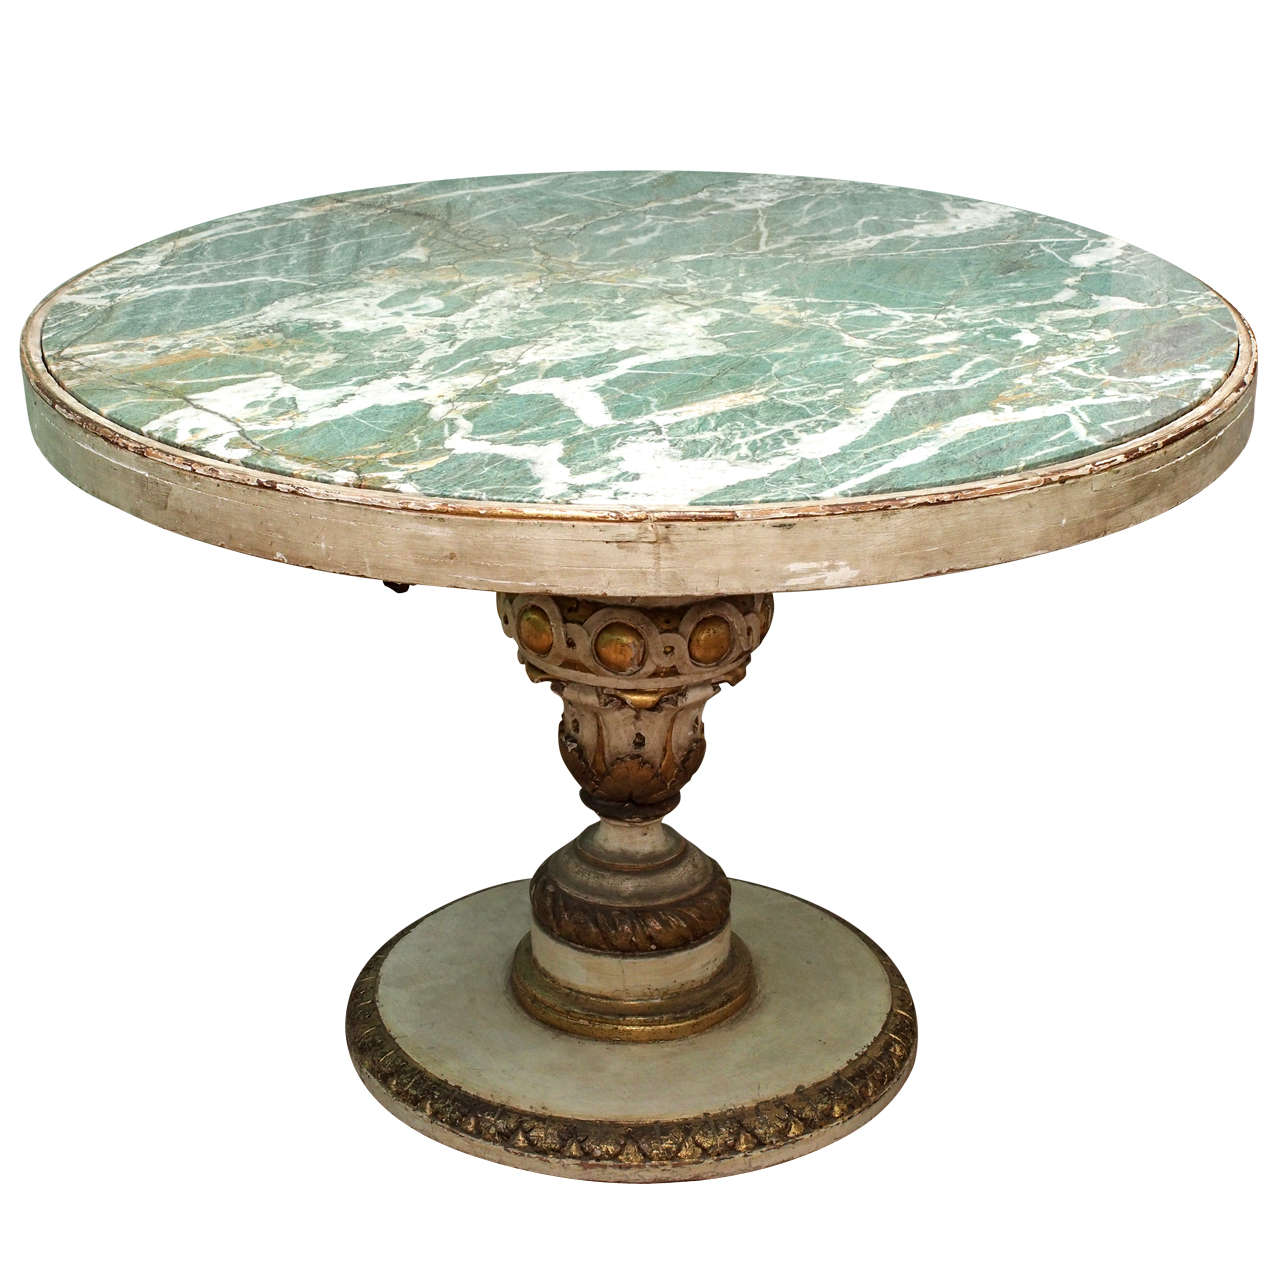 Nail Marble Top Coffee Table: Painted Italian Center Table With Green Marble Top At 1stdibs